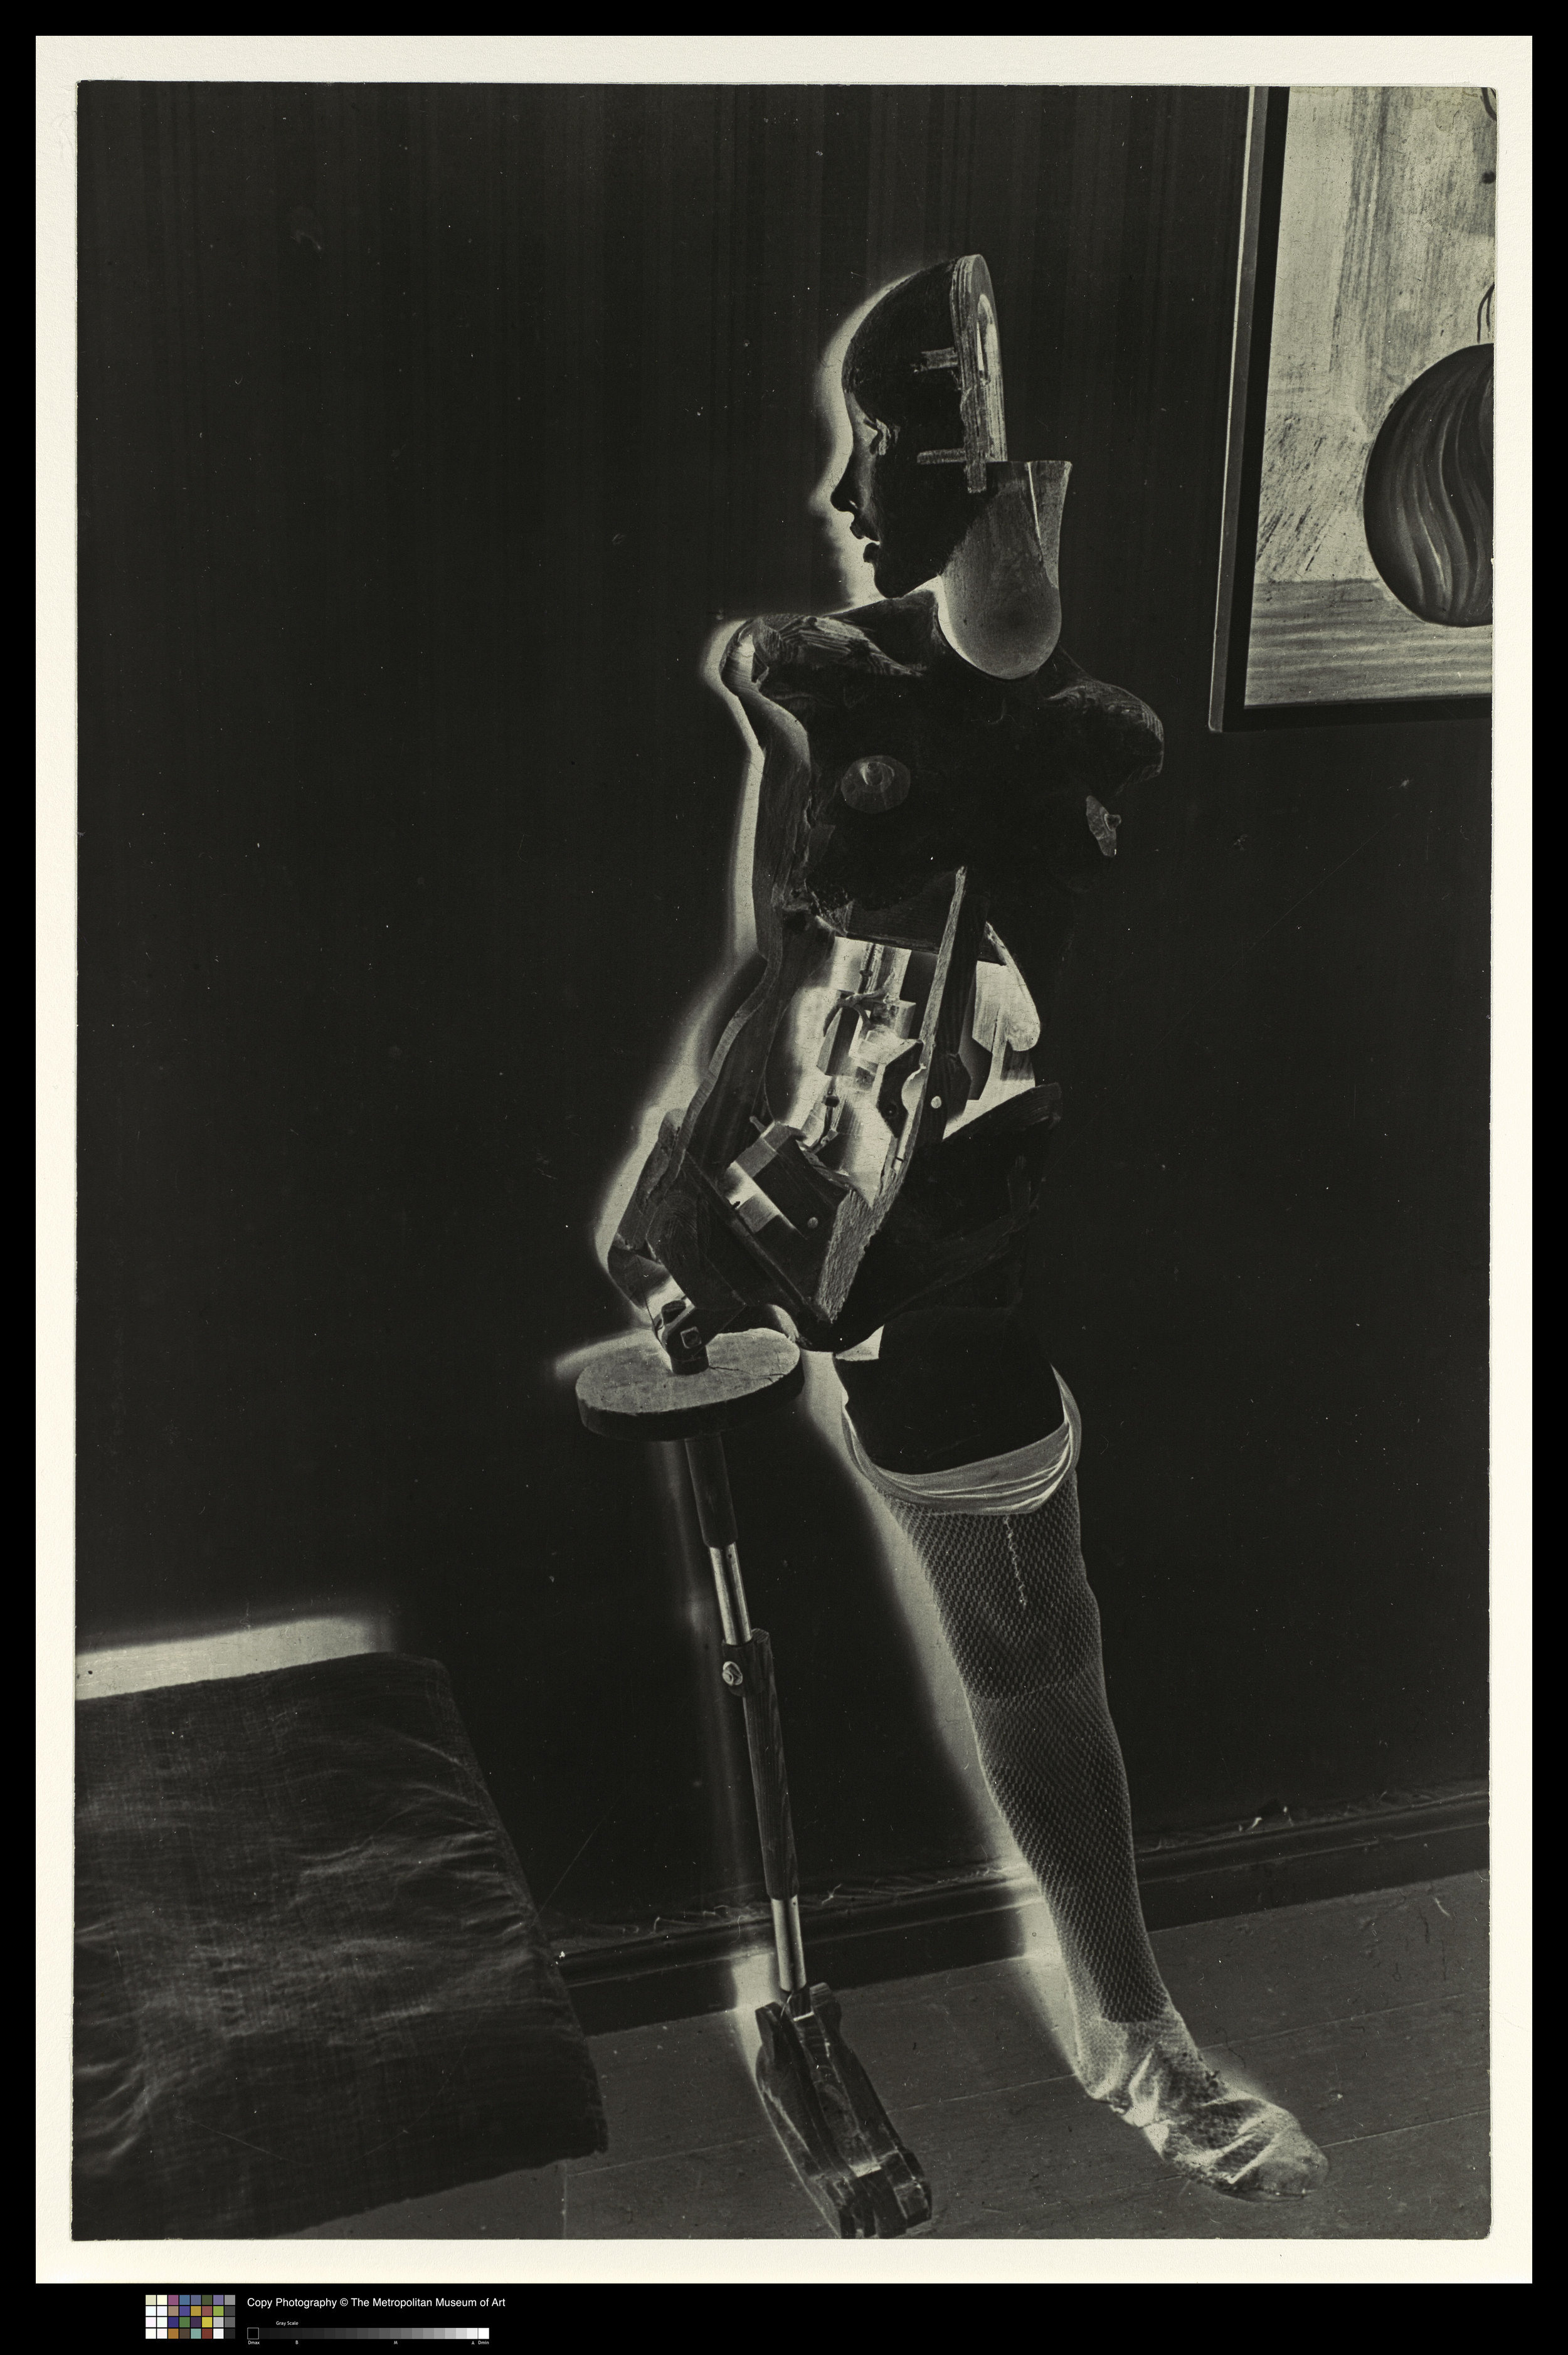 Hans Bellmer,  The Doll  ( La Poupée ), 1934-35. Gelatin Silver Print, 11 5/8 x 7 5/8 in. Courtesy of The Met. © 2019 Artists Rights Society (ARS), New York / ADAGP, Paris.